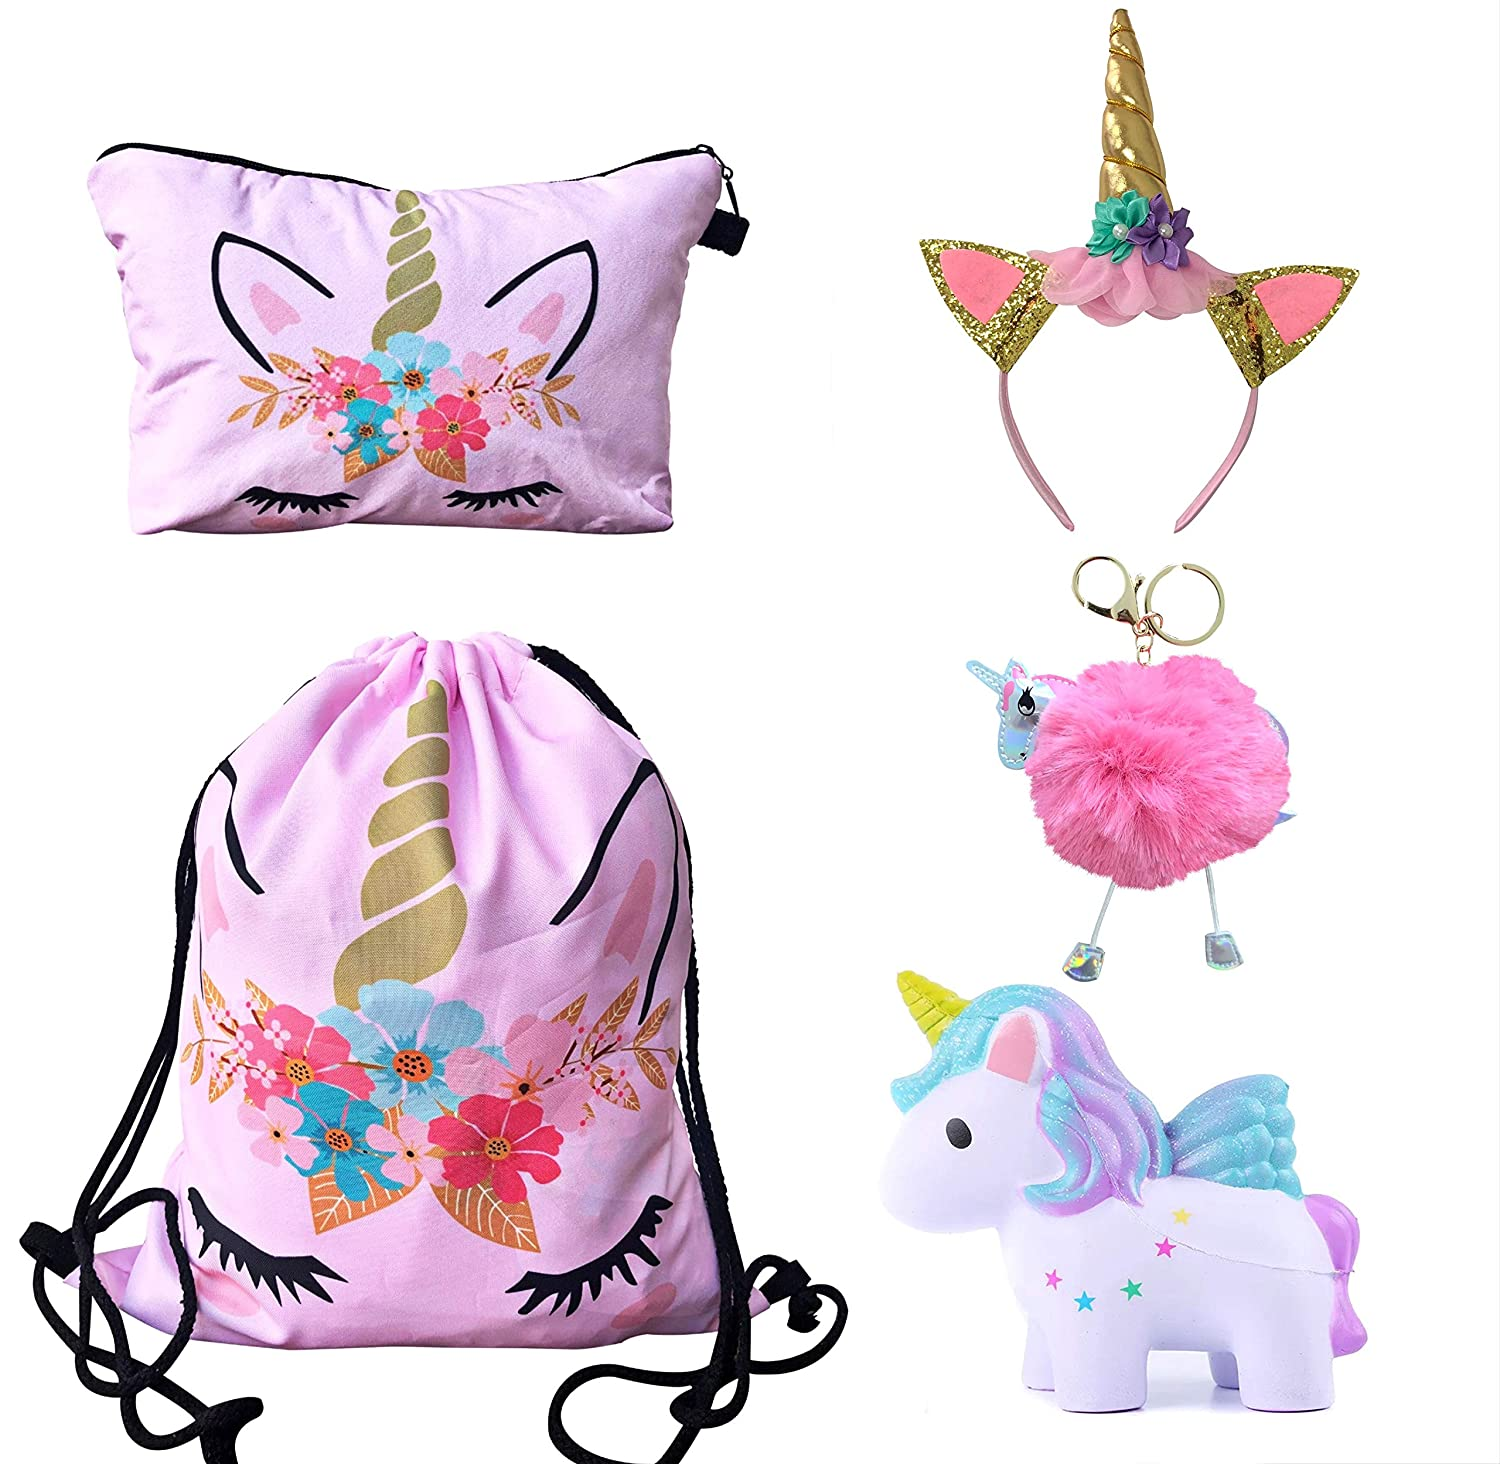 Unicorn Gifts for Girls - Unicorn Drawstring Backpack/Makeup Bag/Headband/Keychain/Unicorn Squishy (Pink Flower Unicorn)